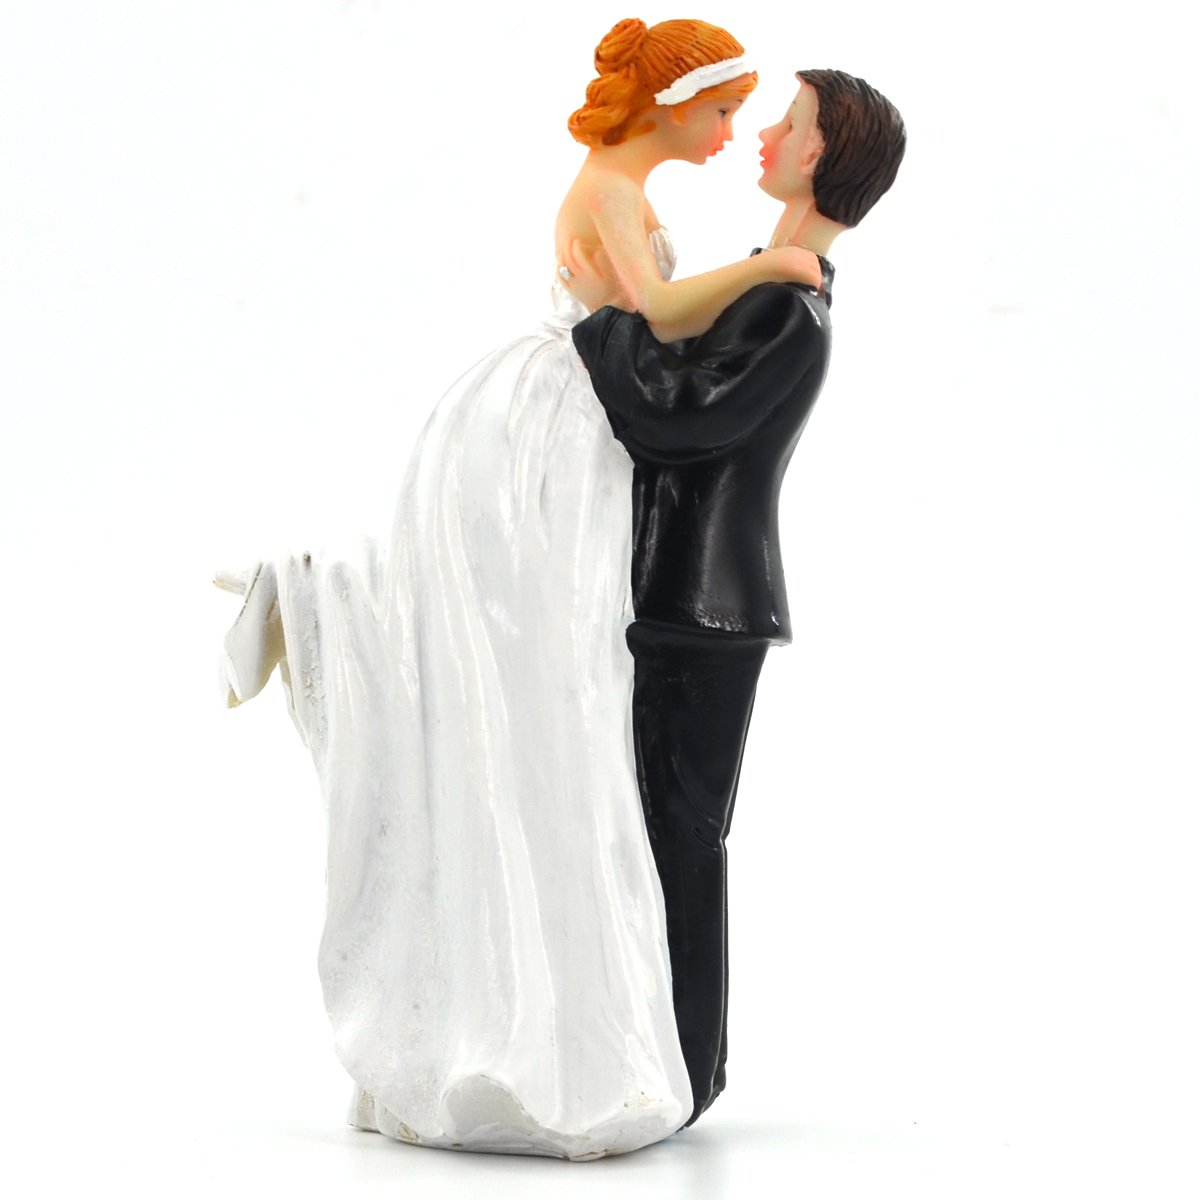 Marriage Celebration Cake Doll Painted Resinic Crafts Home Decoration Craft Decoration, Rose Bride & Groom Coupled Statues Resin Decoration 7 7 13.5cm